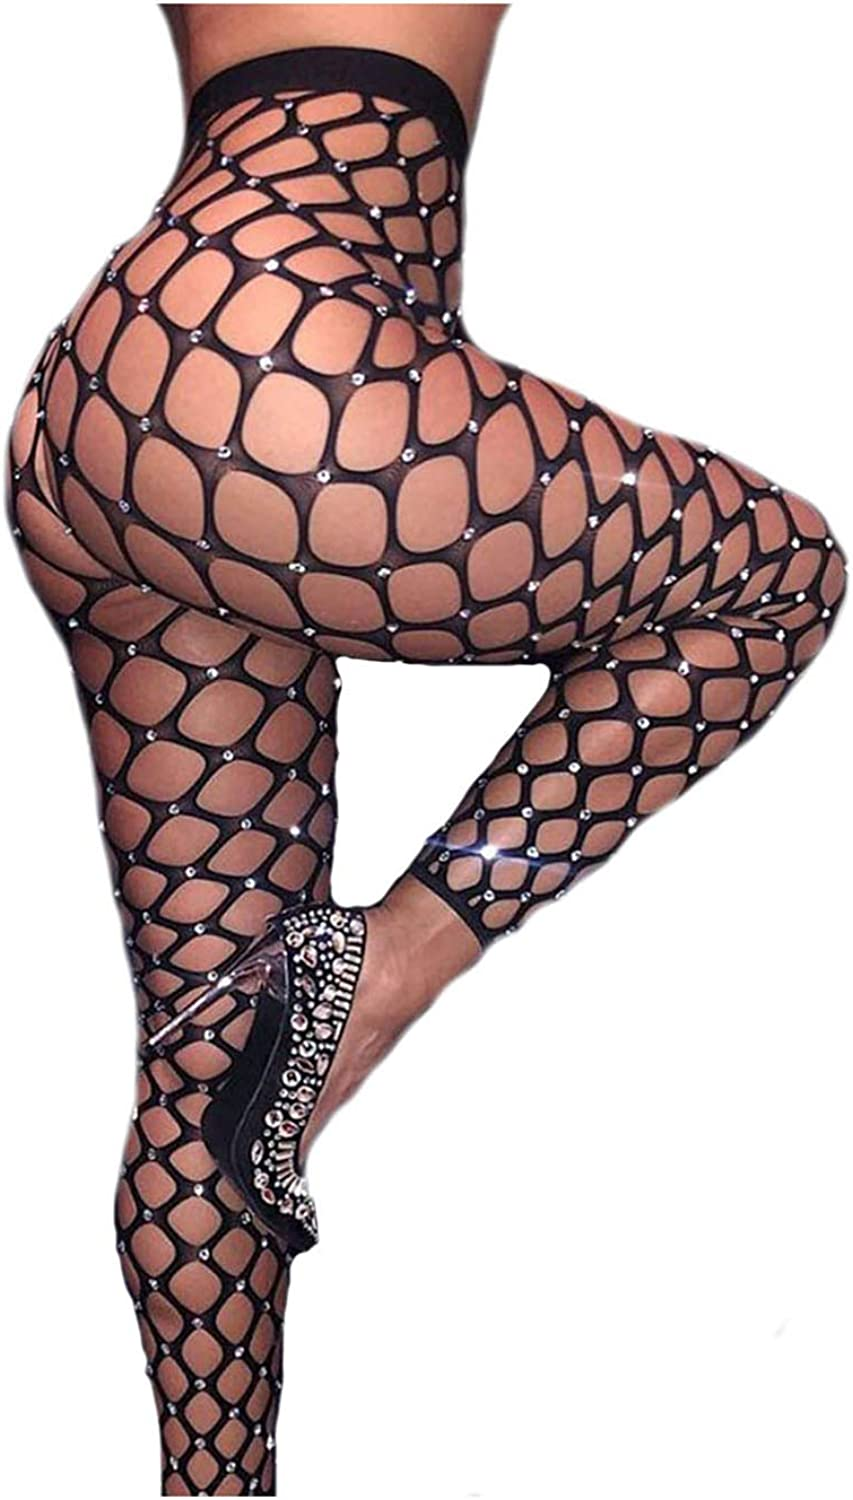 Nicute High Waist Tights Fishnet Stockings with Crystals Black Thigh High Pantyhose for Women and Girls